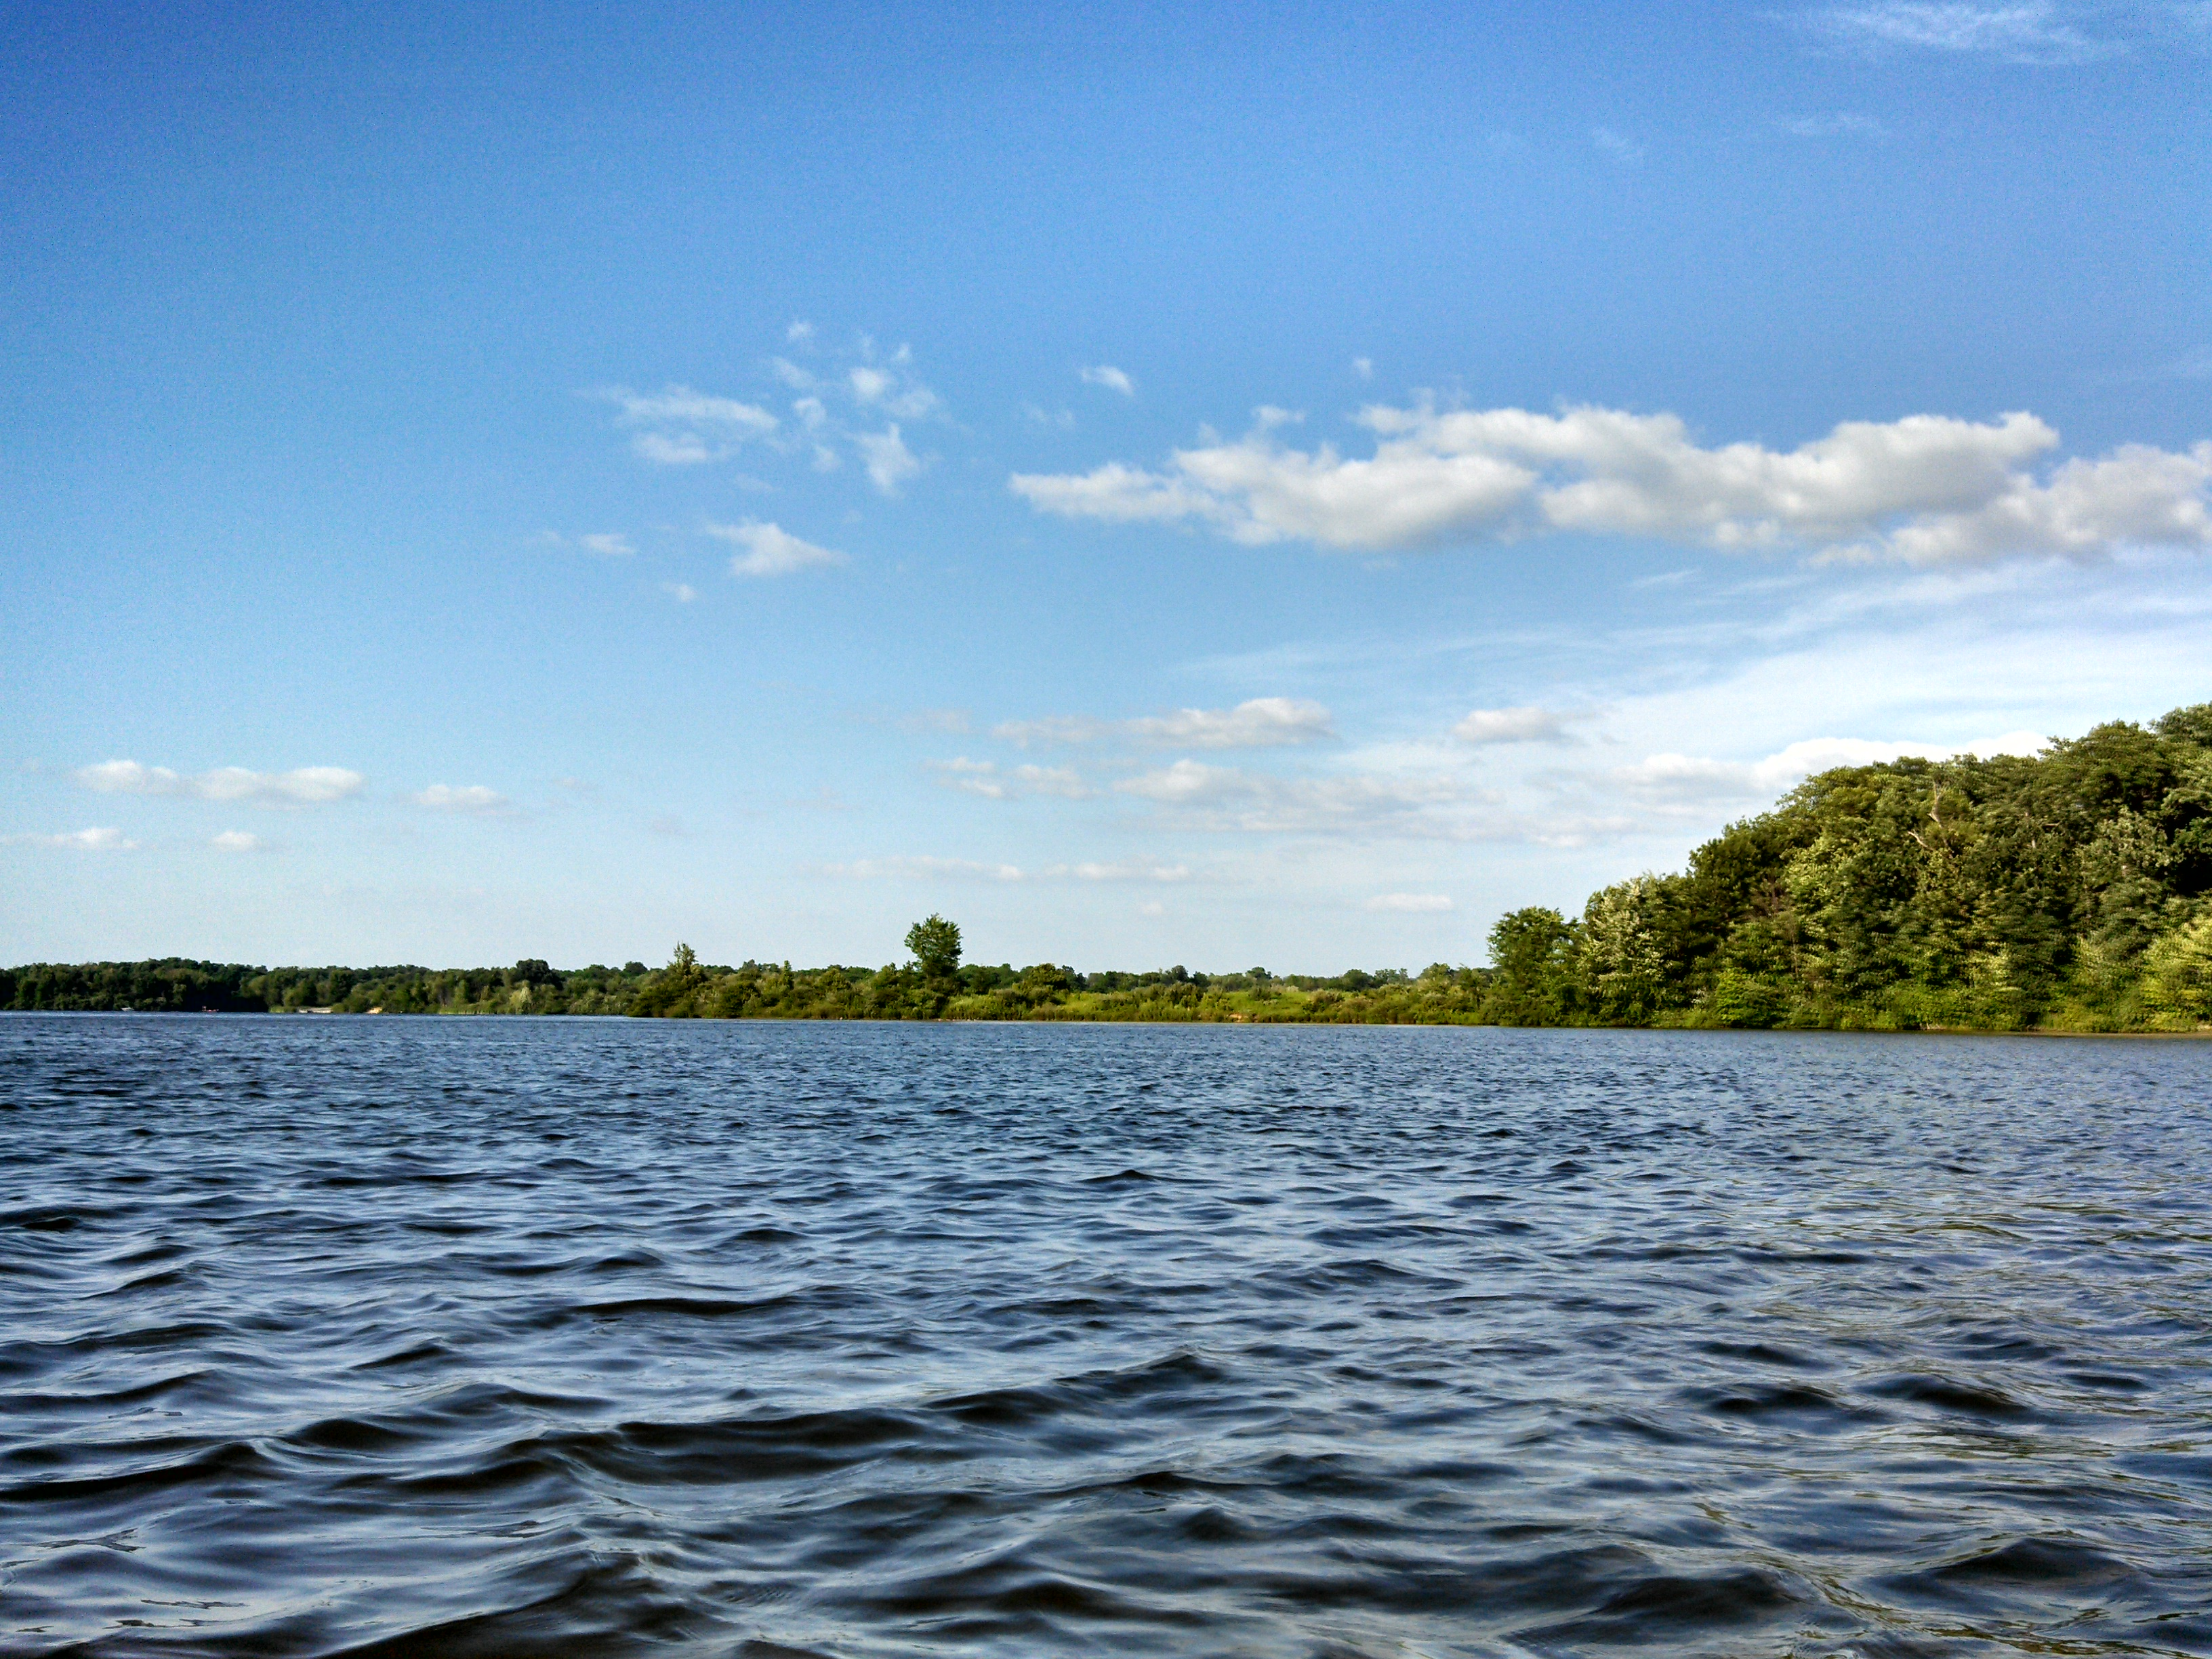 Lake Ovid Shoreline from Kayak